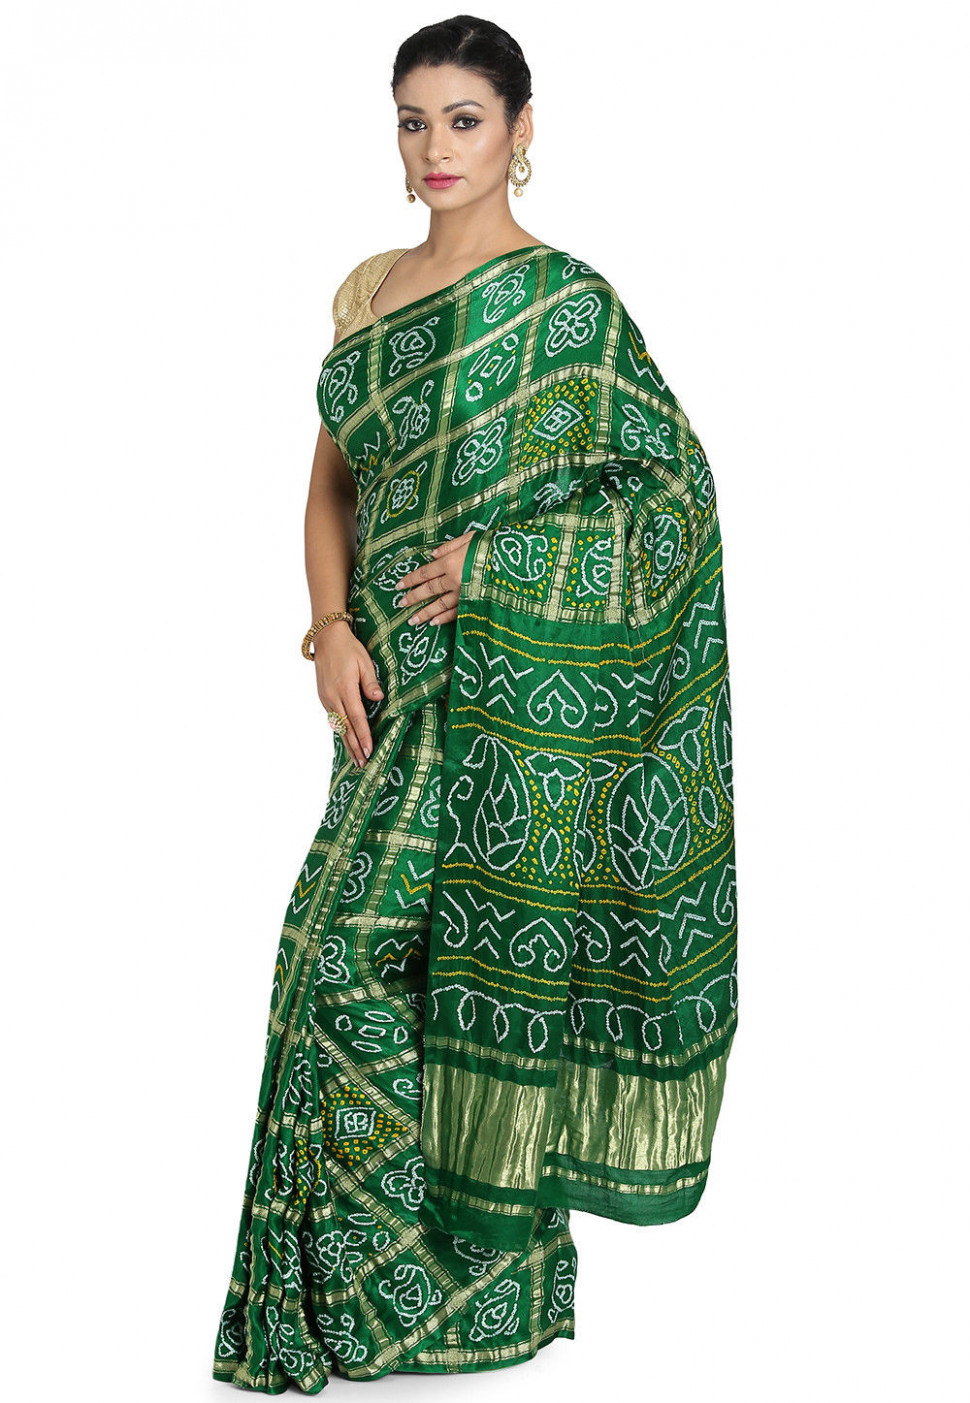 Pure Satin Silk Gharchola Saree in Green : SJN7210